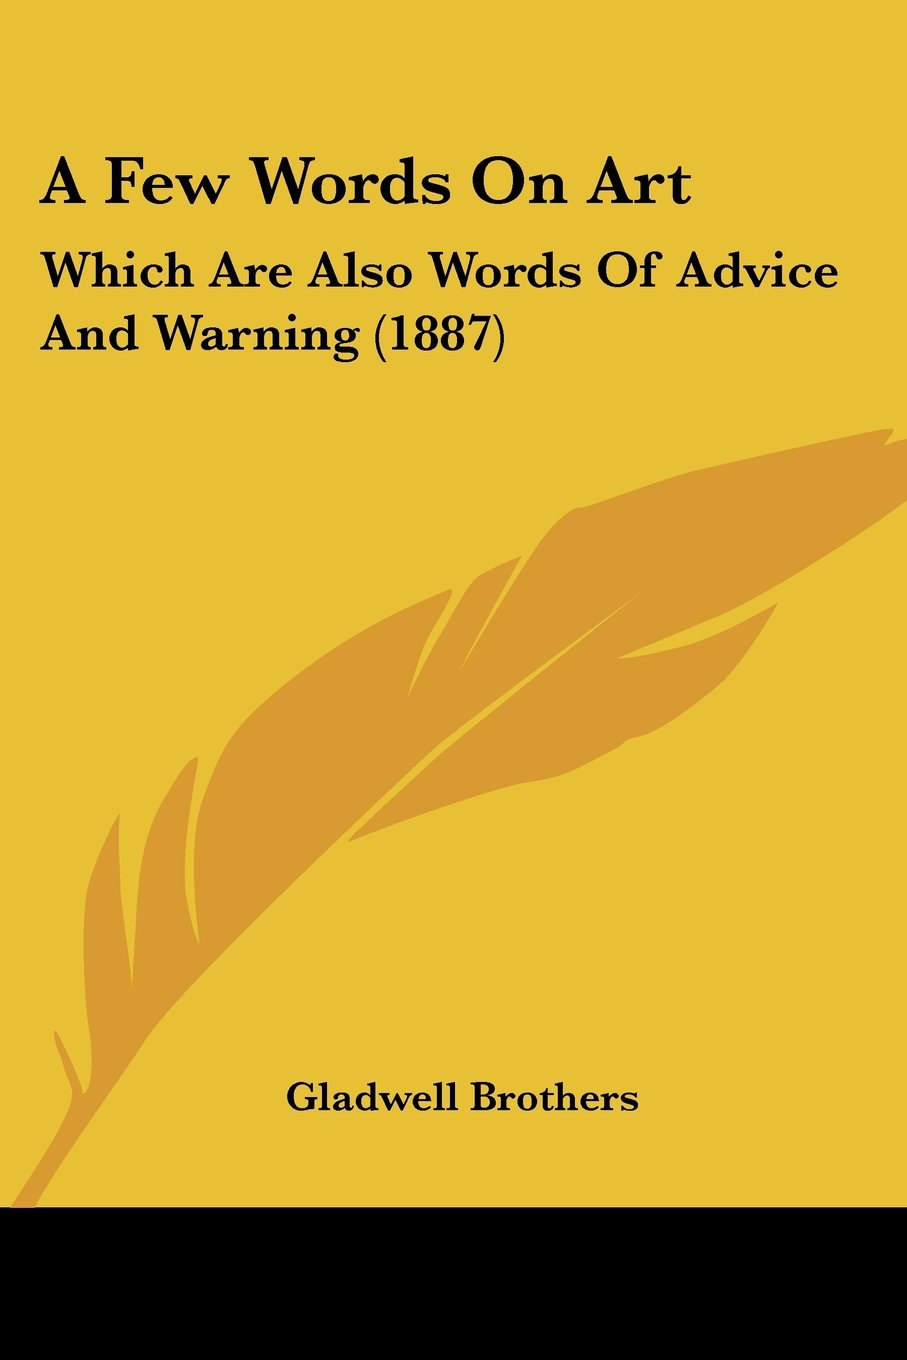 Download A Few Words On Art: Which Are Also Words Of Advice And Warning (1887) pdf